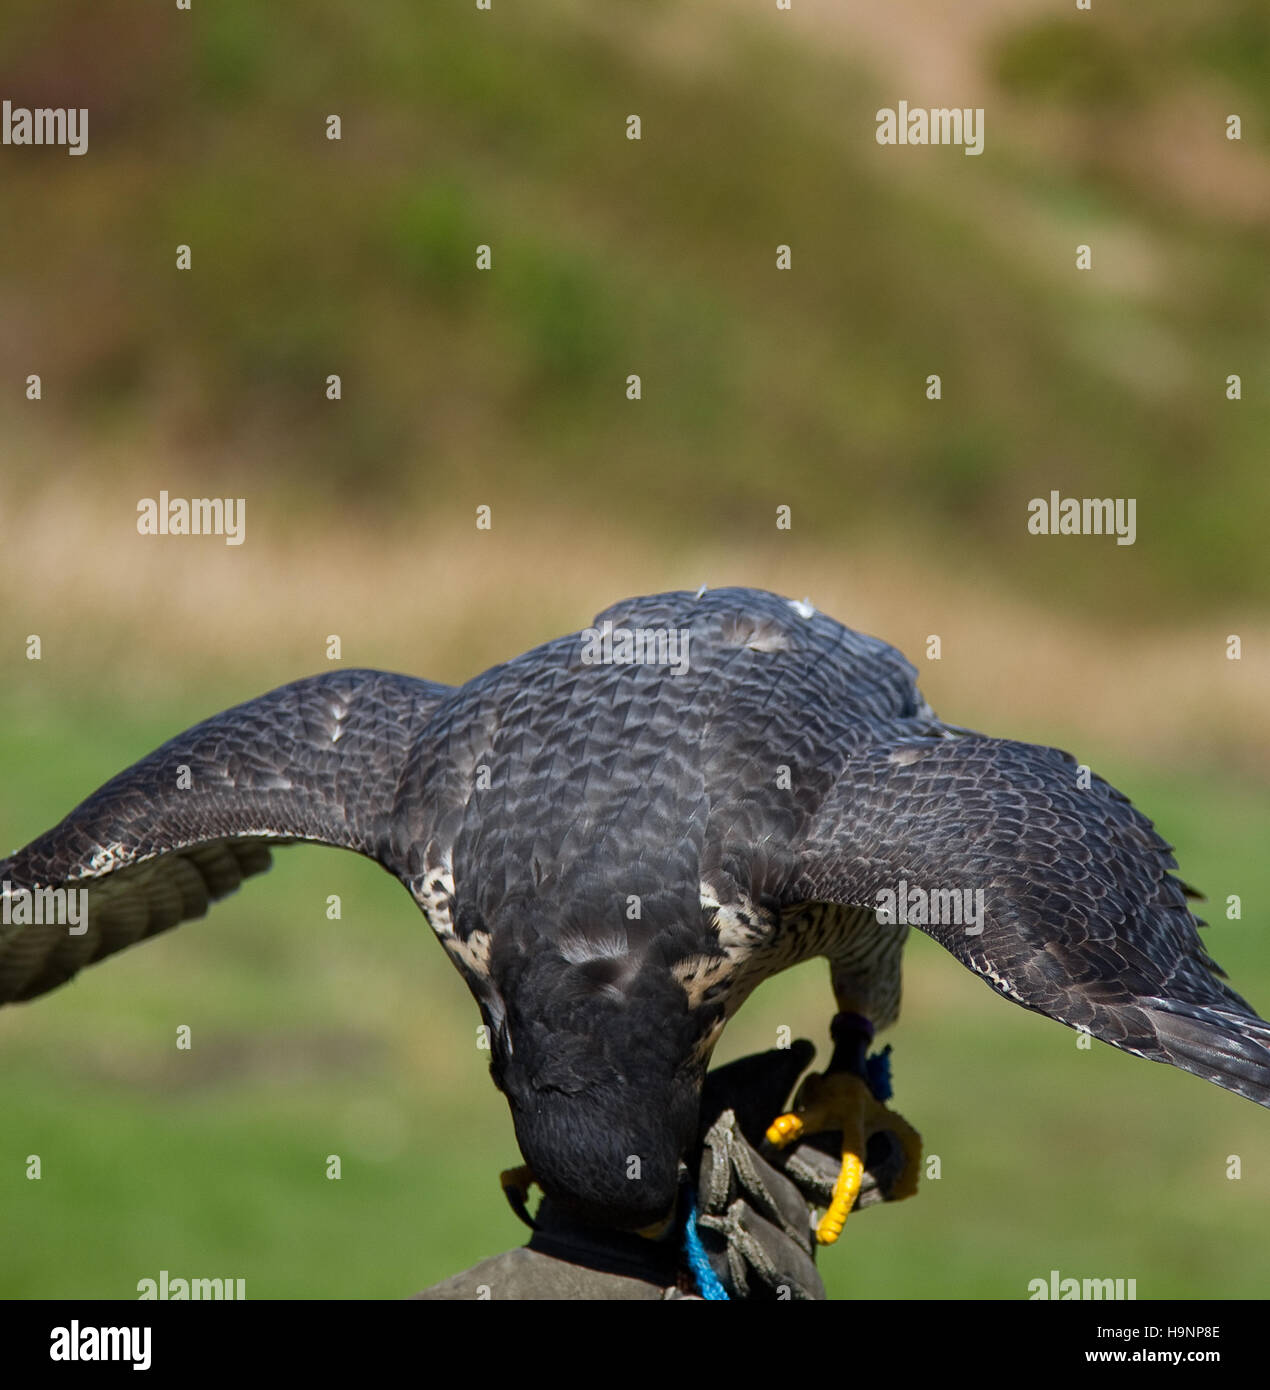 Front view of a falcon eating with wings open. Shot at the Grouse Mountain in Vancouver, Canada - Stock Image